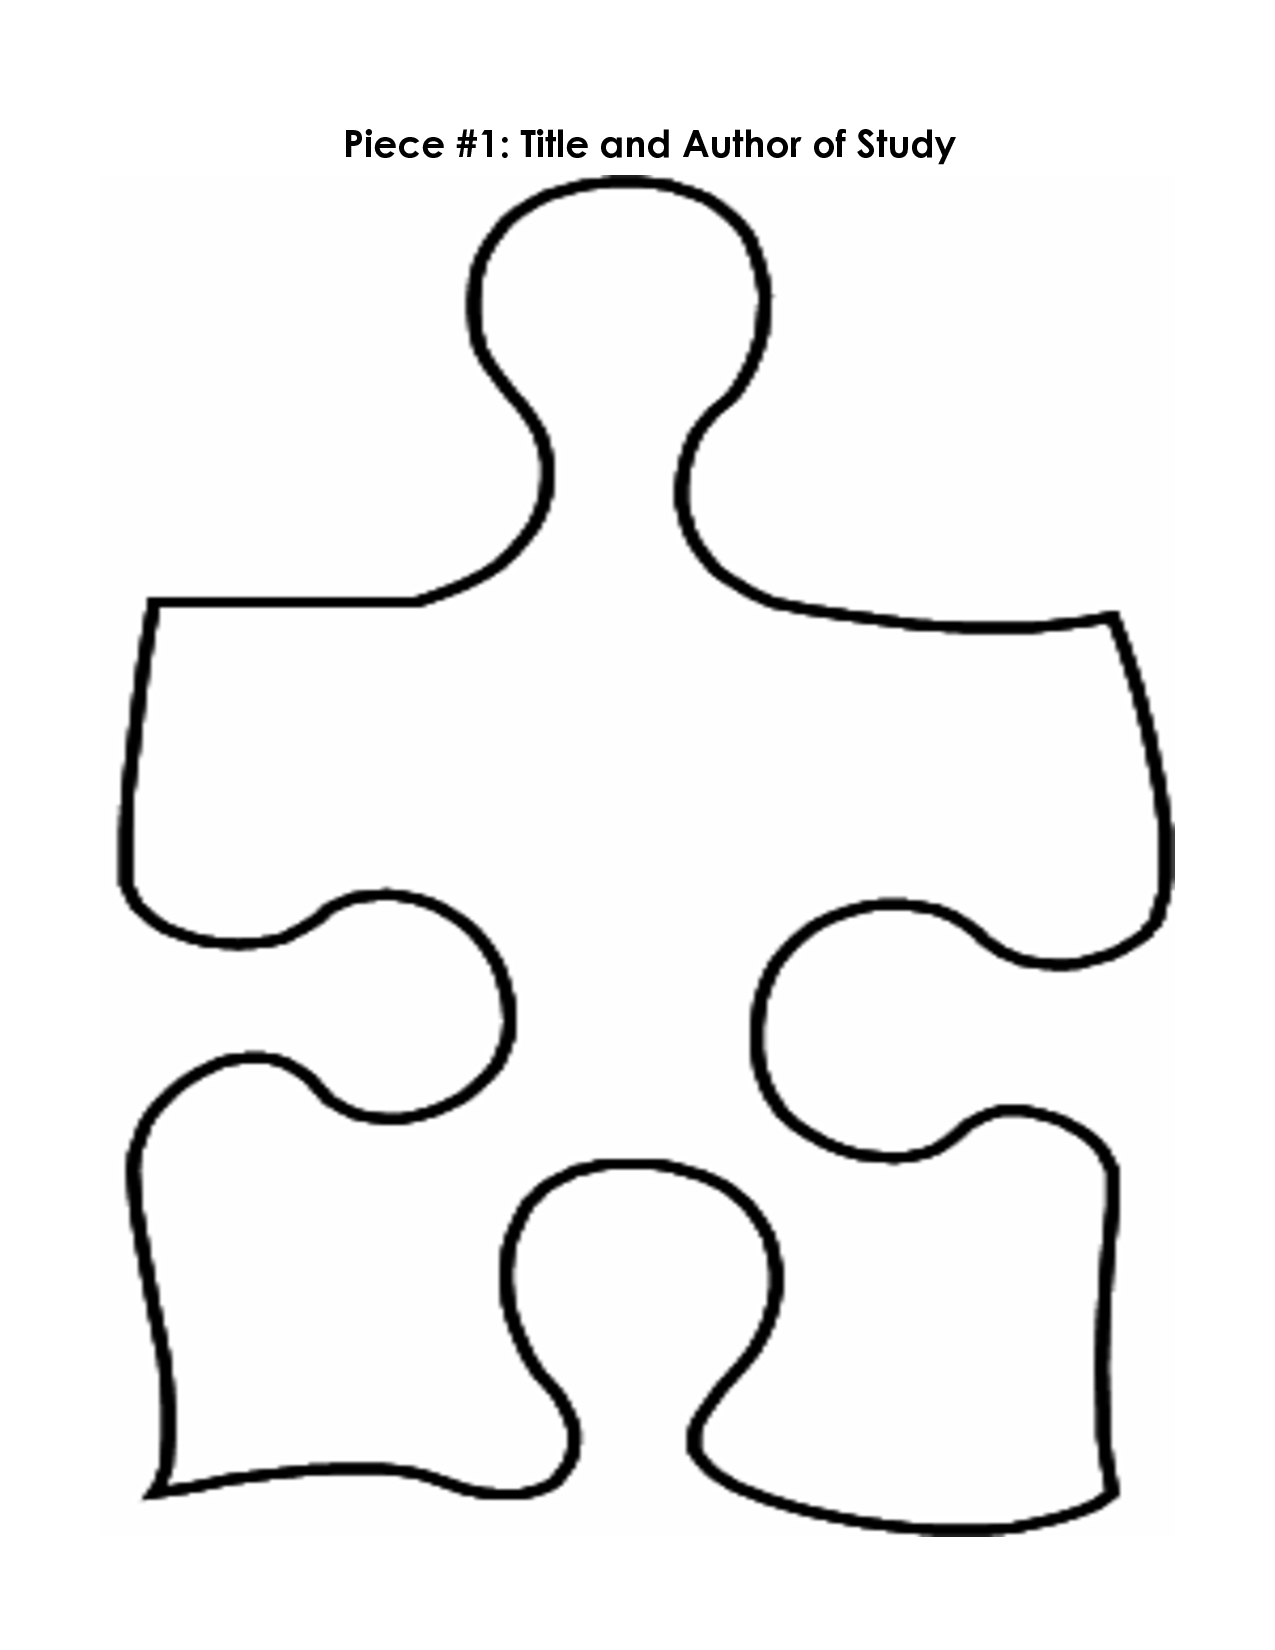 Puzzle Piece Mystery Book Template Pp   Printables   Pinterest - Free Blank Printable Puzzle Pieces